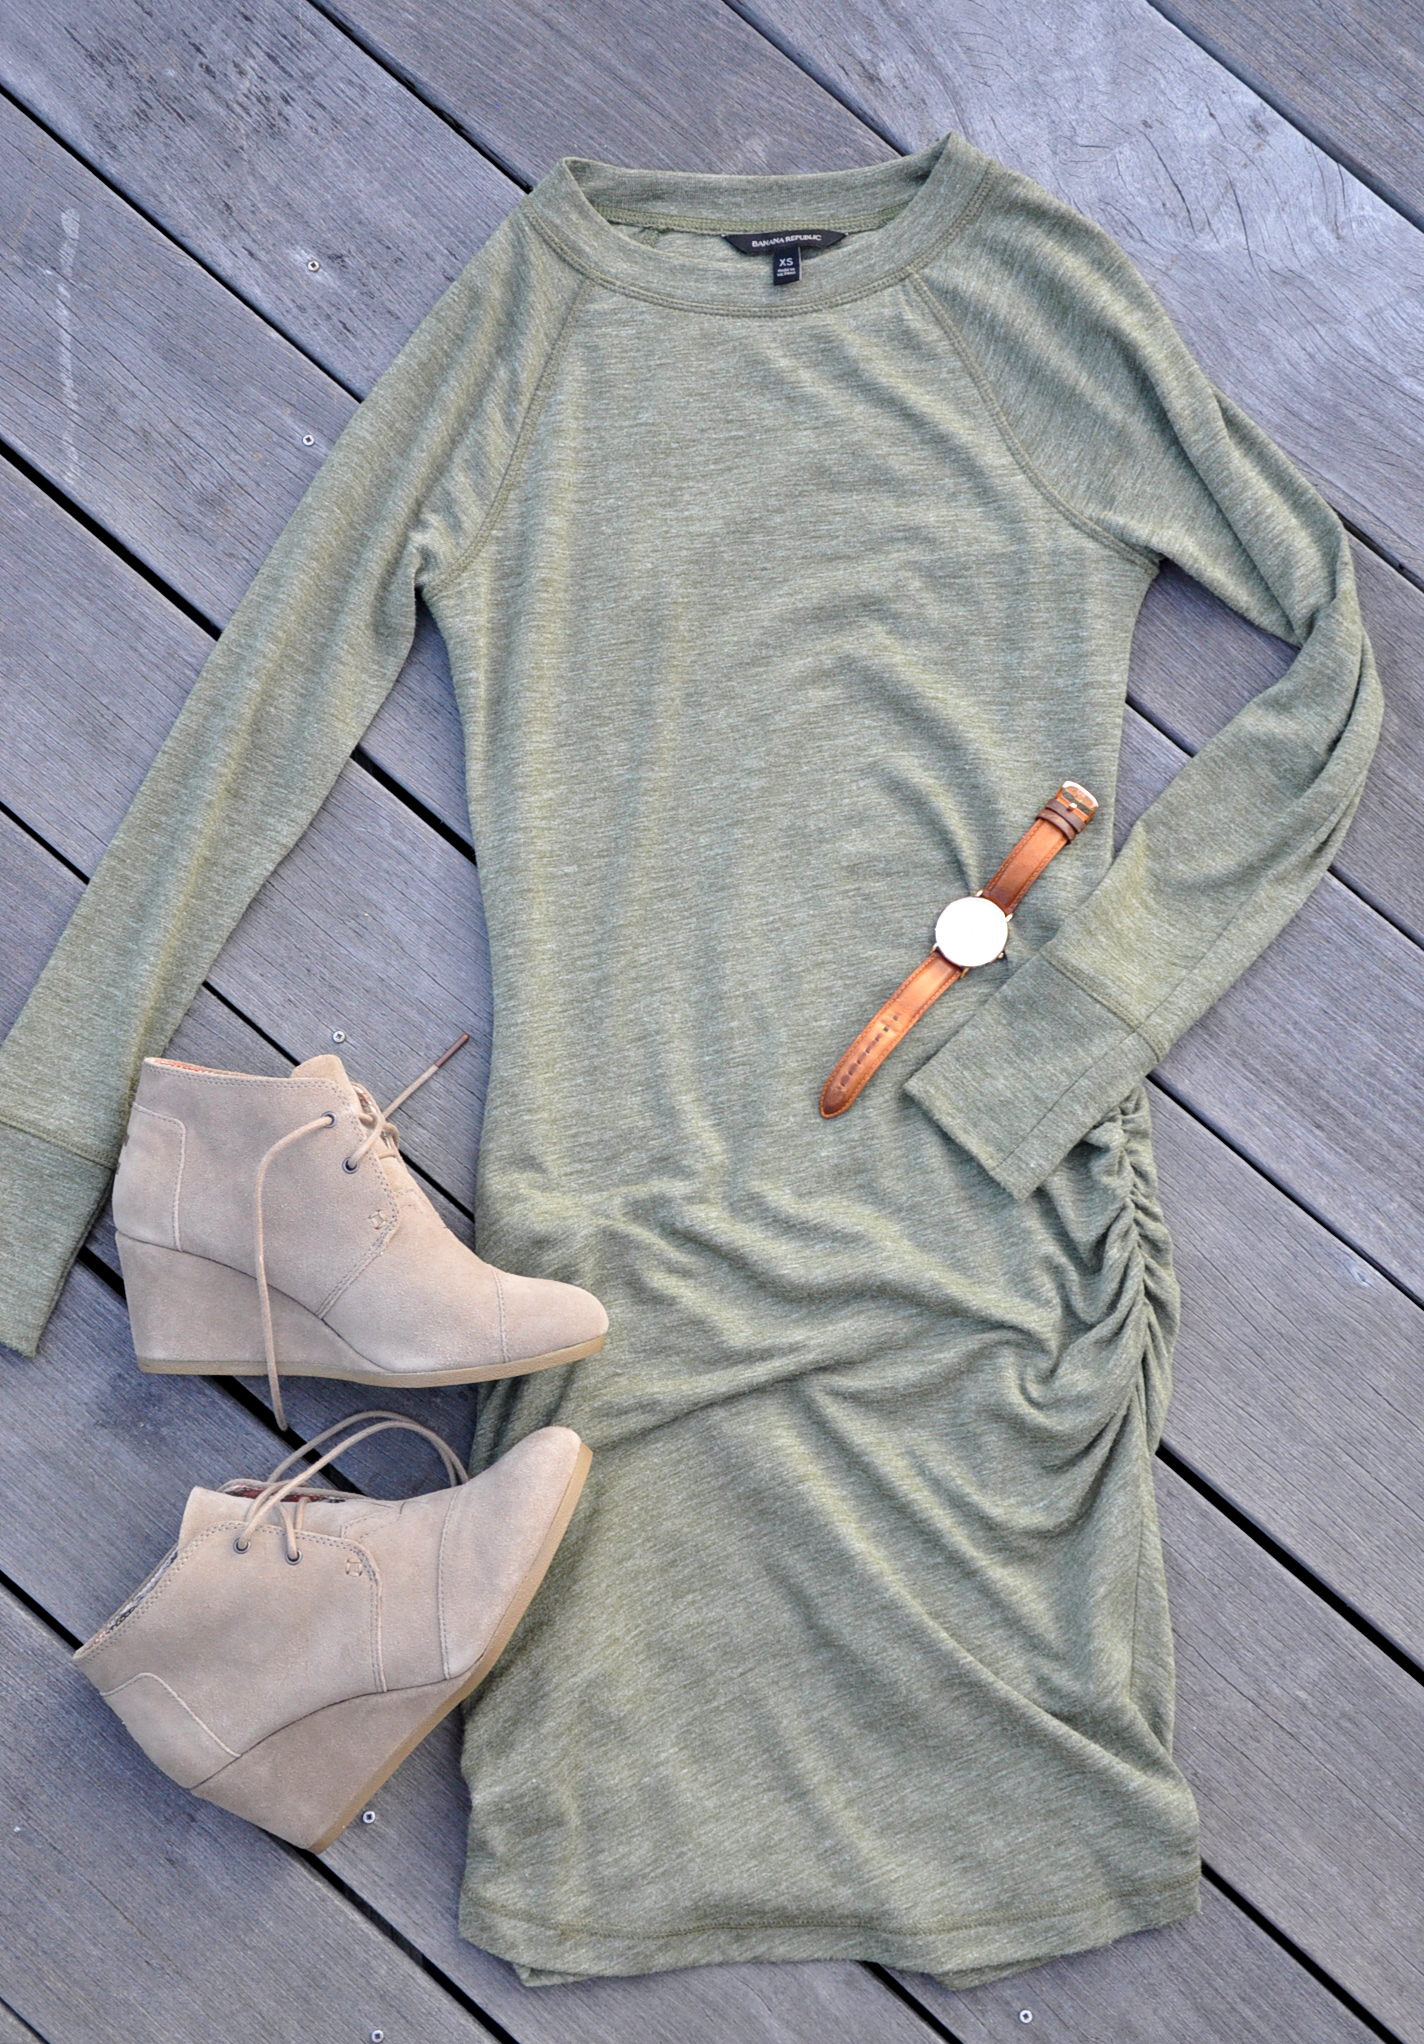 Fall Mix & Match Outfits | Drink the Day